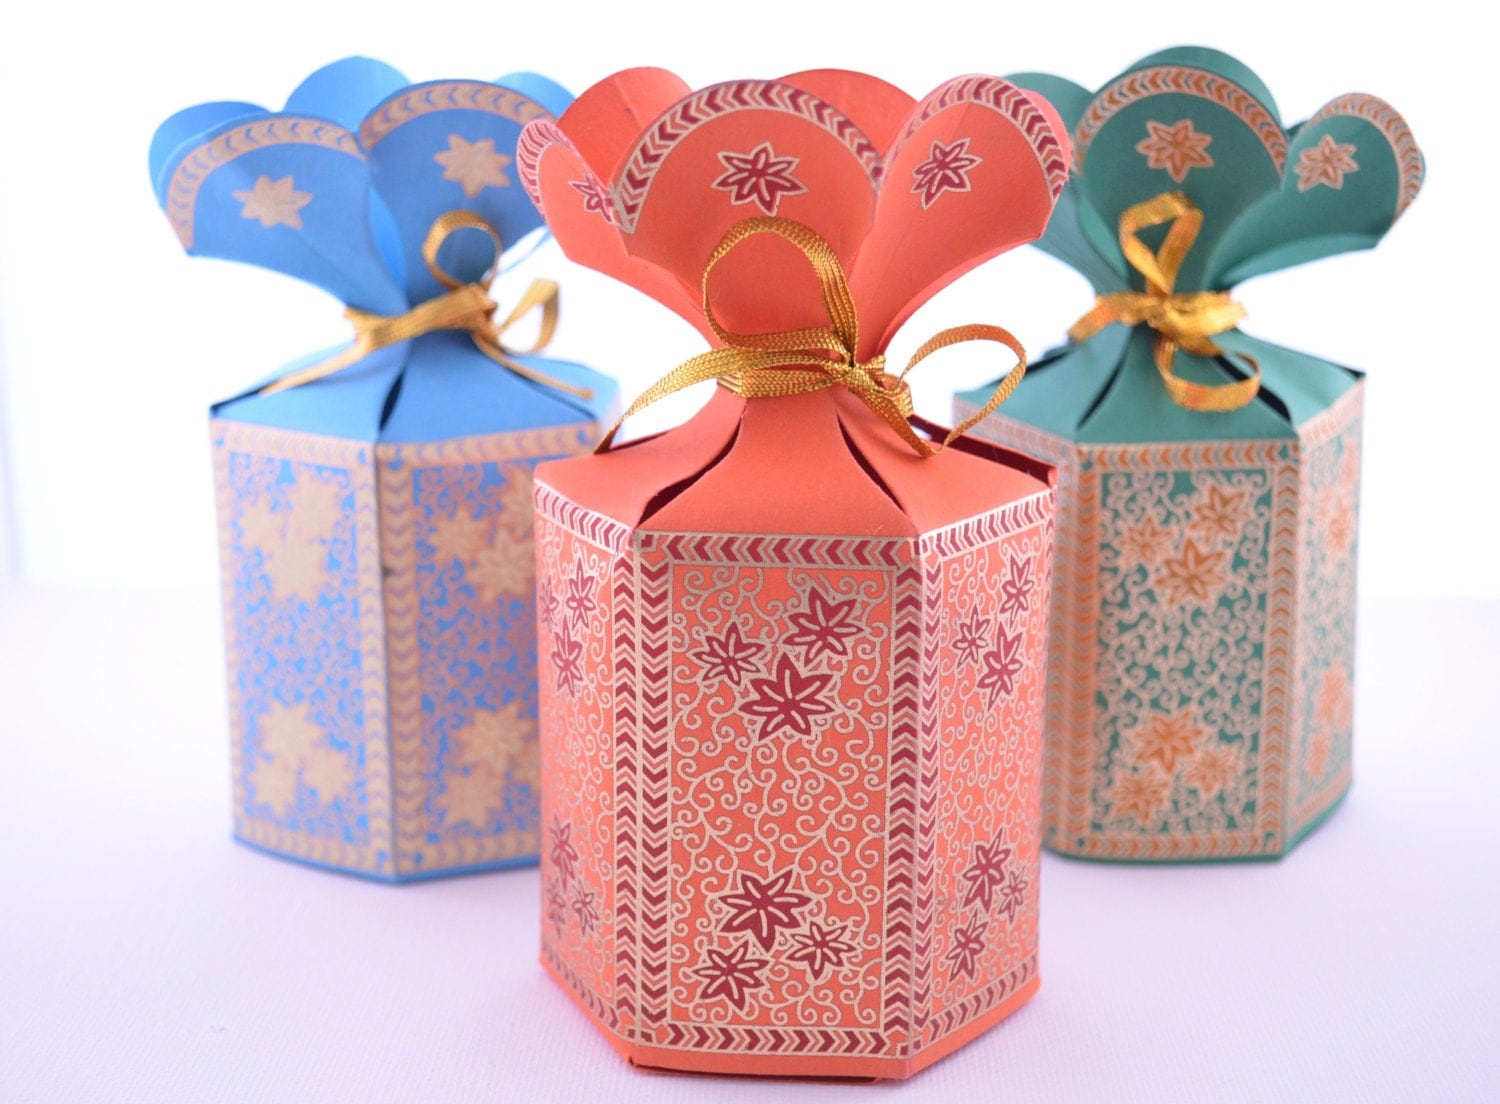 Indian Wedding Gift Articles : Indian Wedding Gifts Etsy indian wedding favor related items